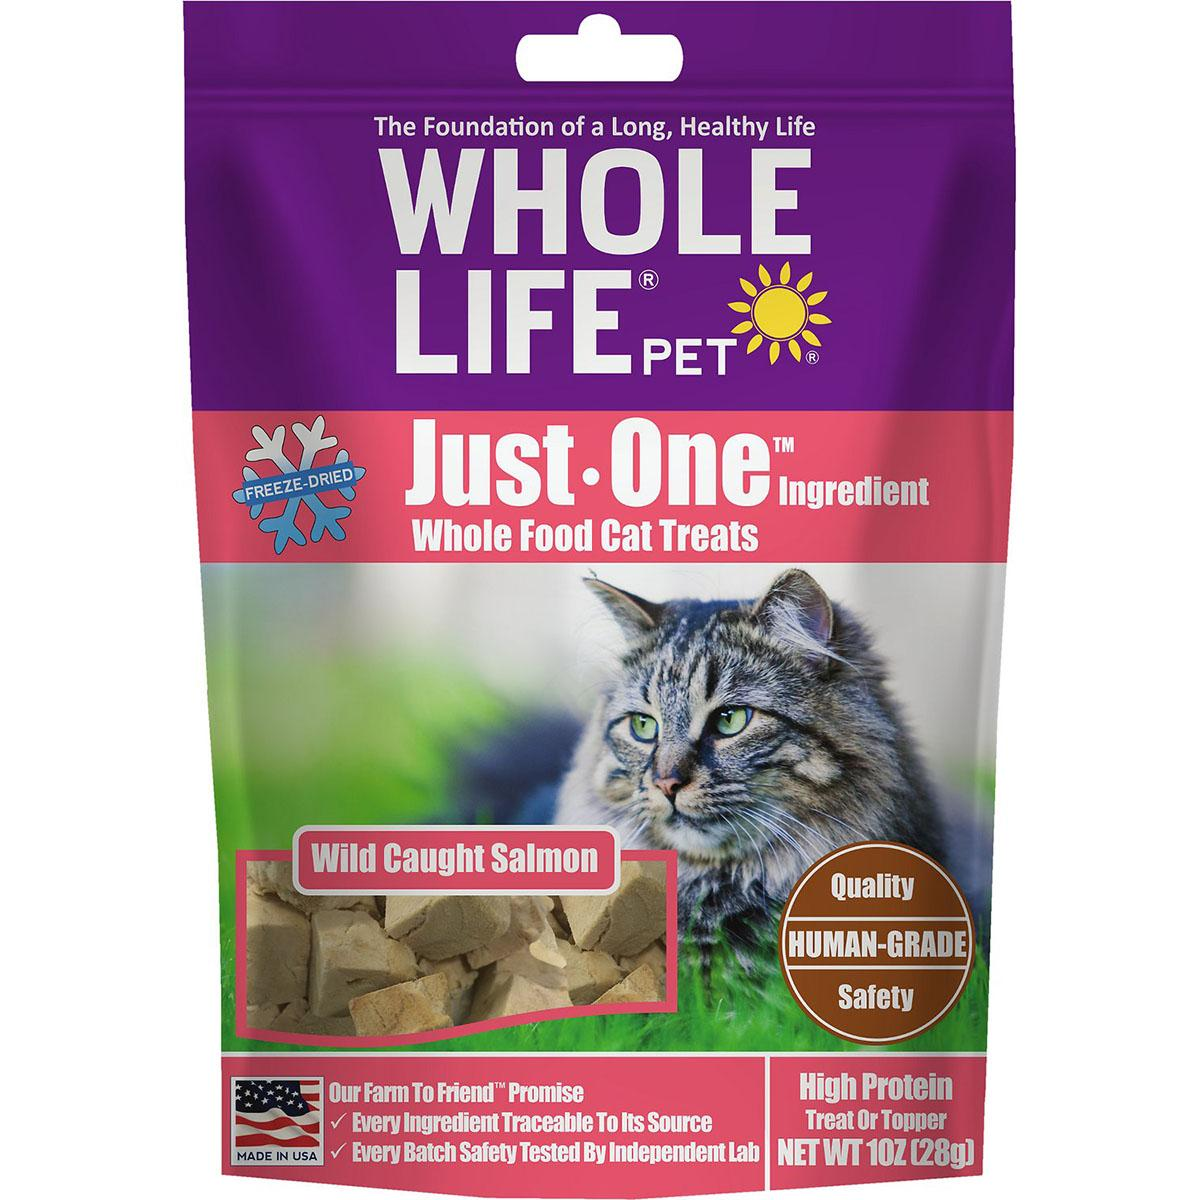 Whole Life Pet Just One Ingredient Freeze-Dried Salmon Cat Treats